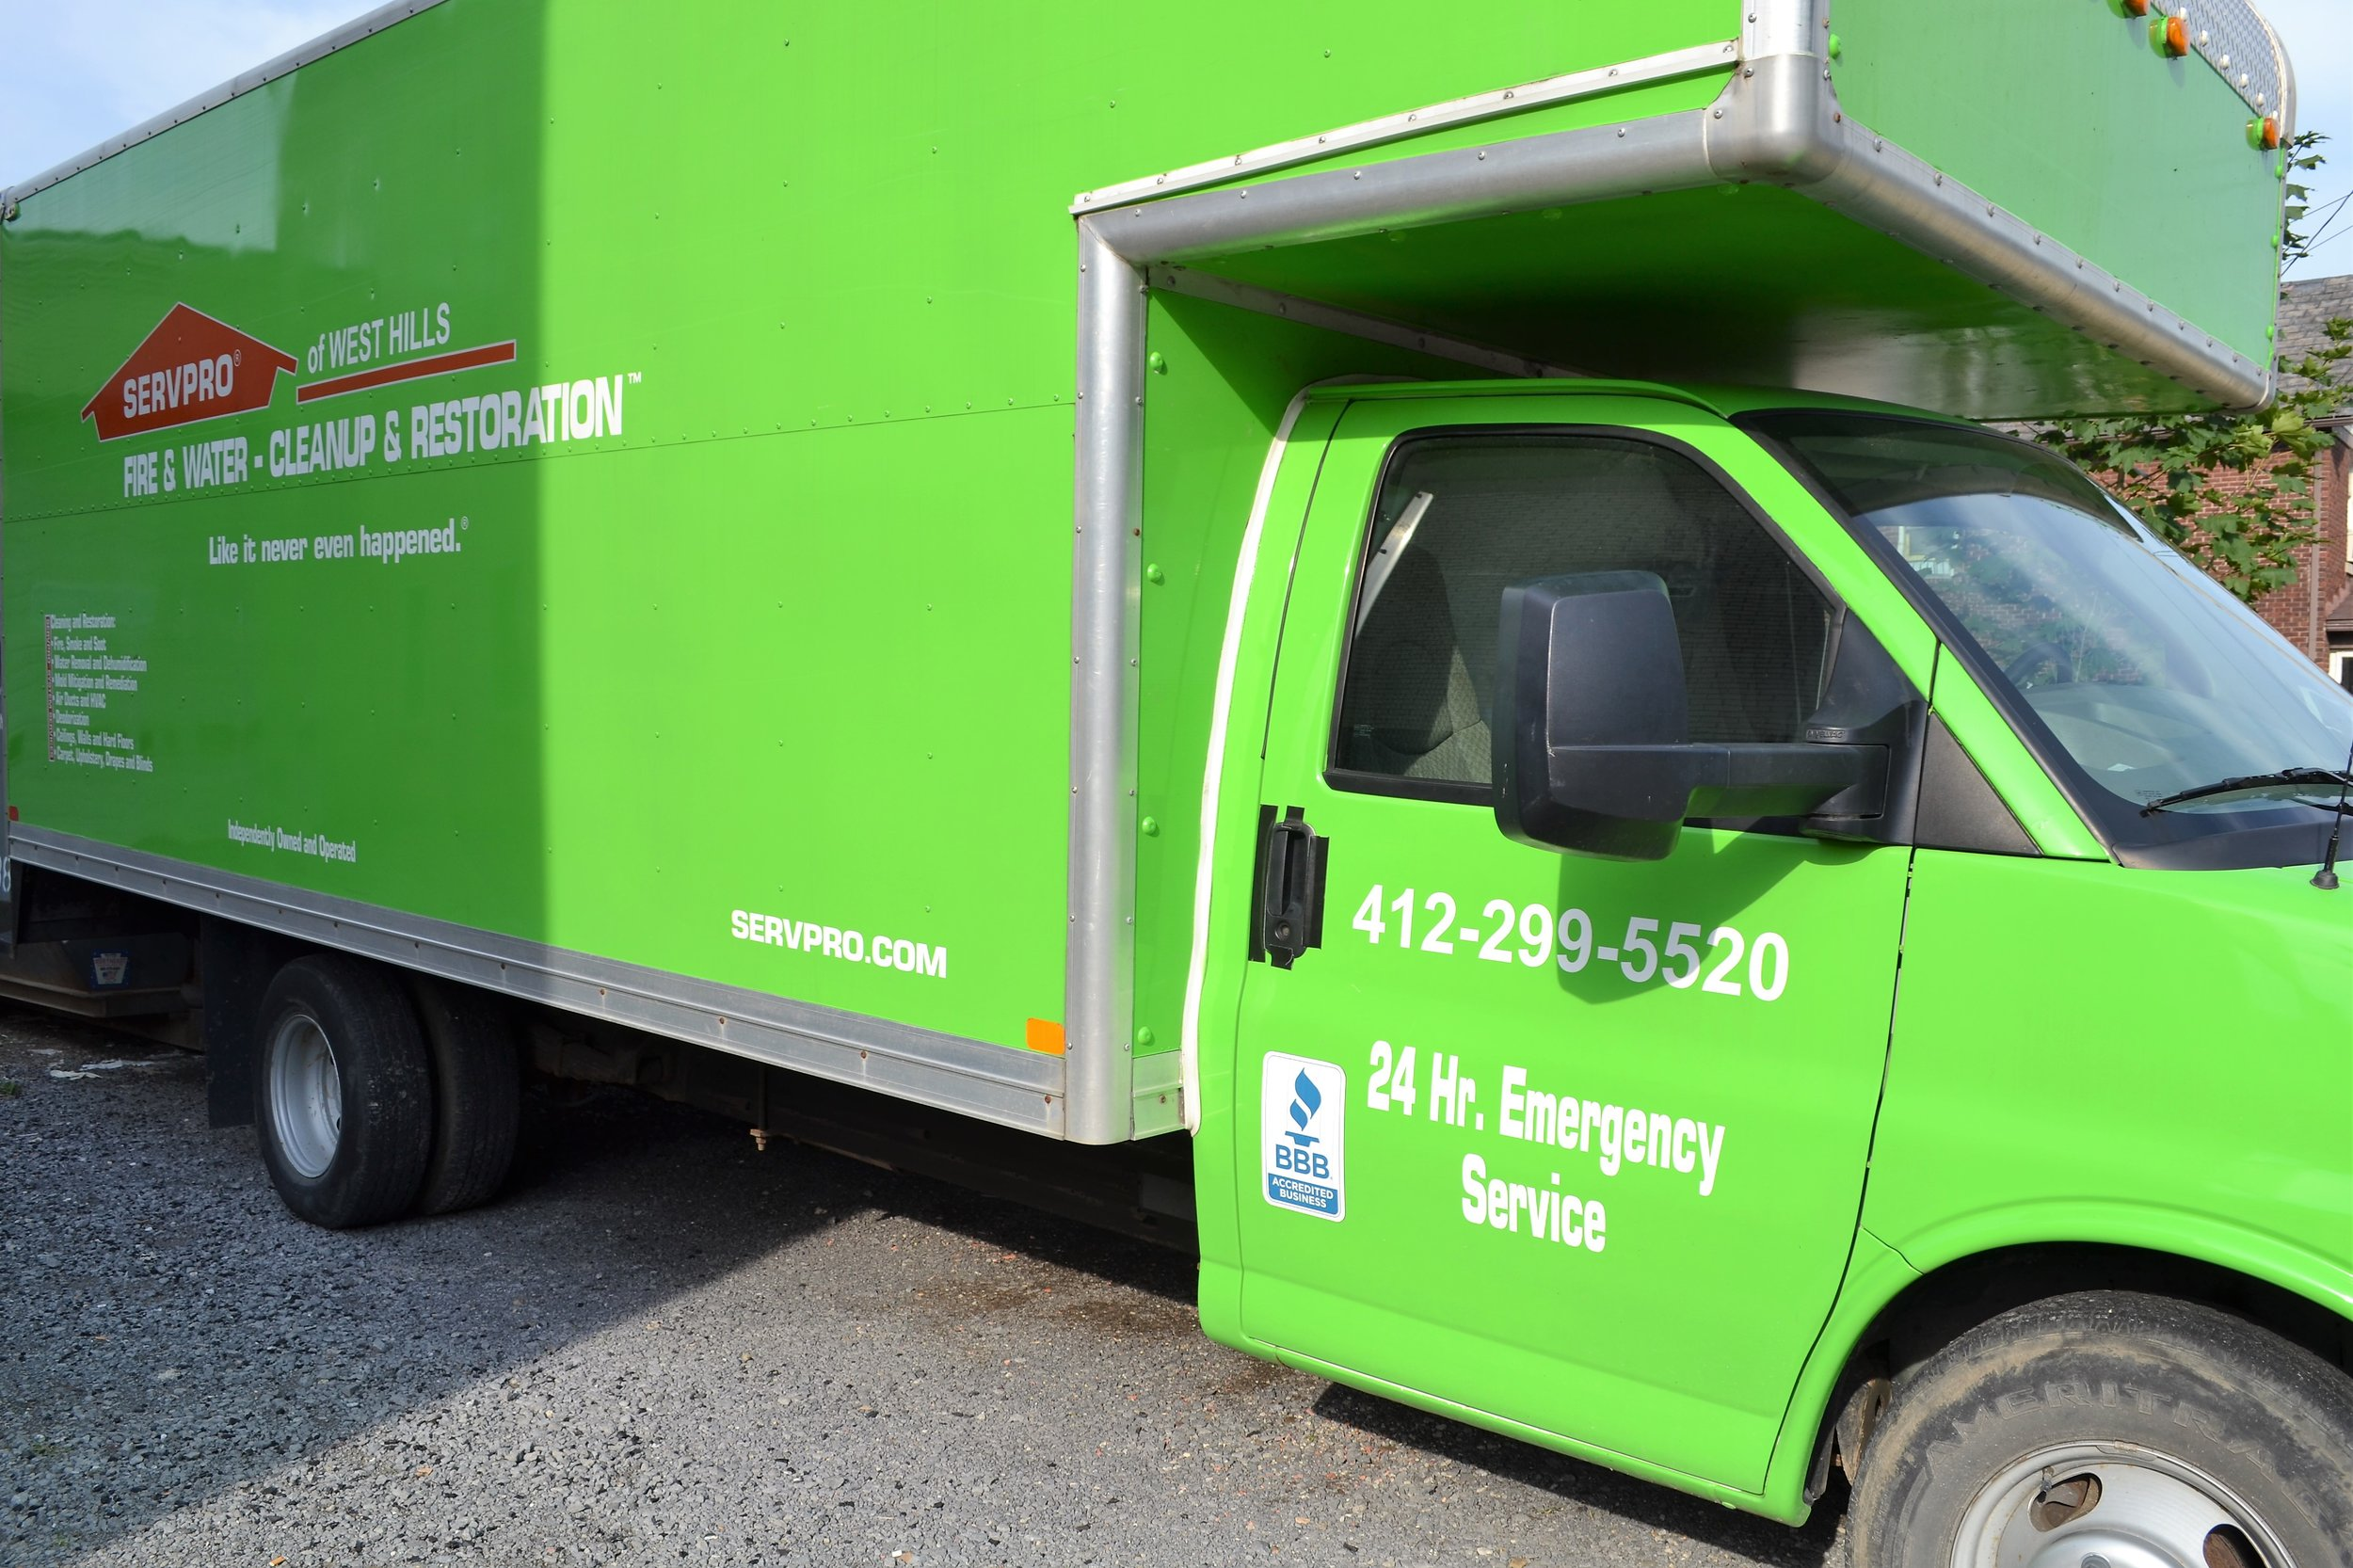 ServPro of West Hills - 1331 5th Ave,(412) 299-5520